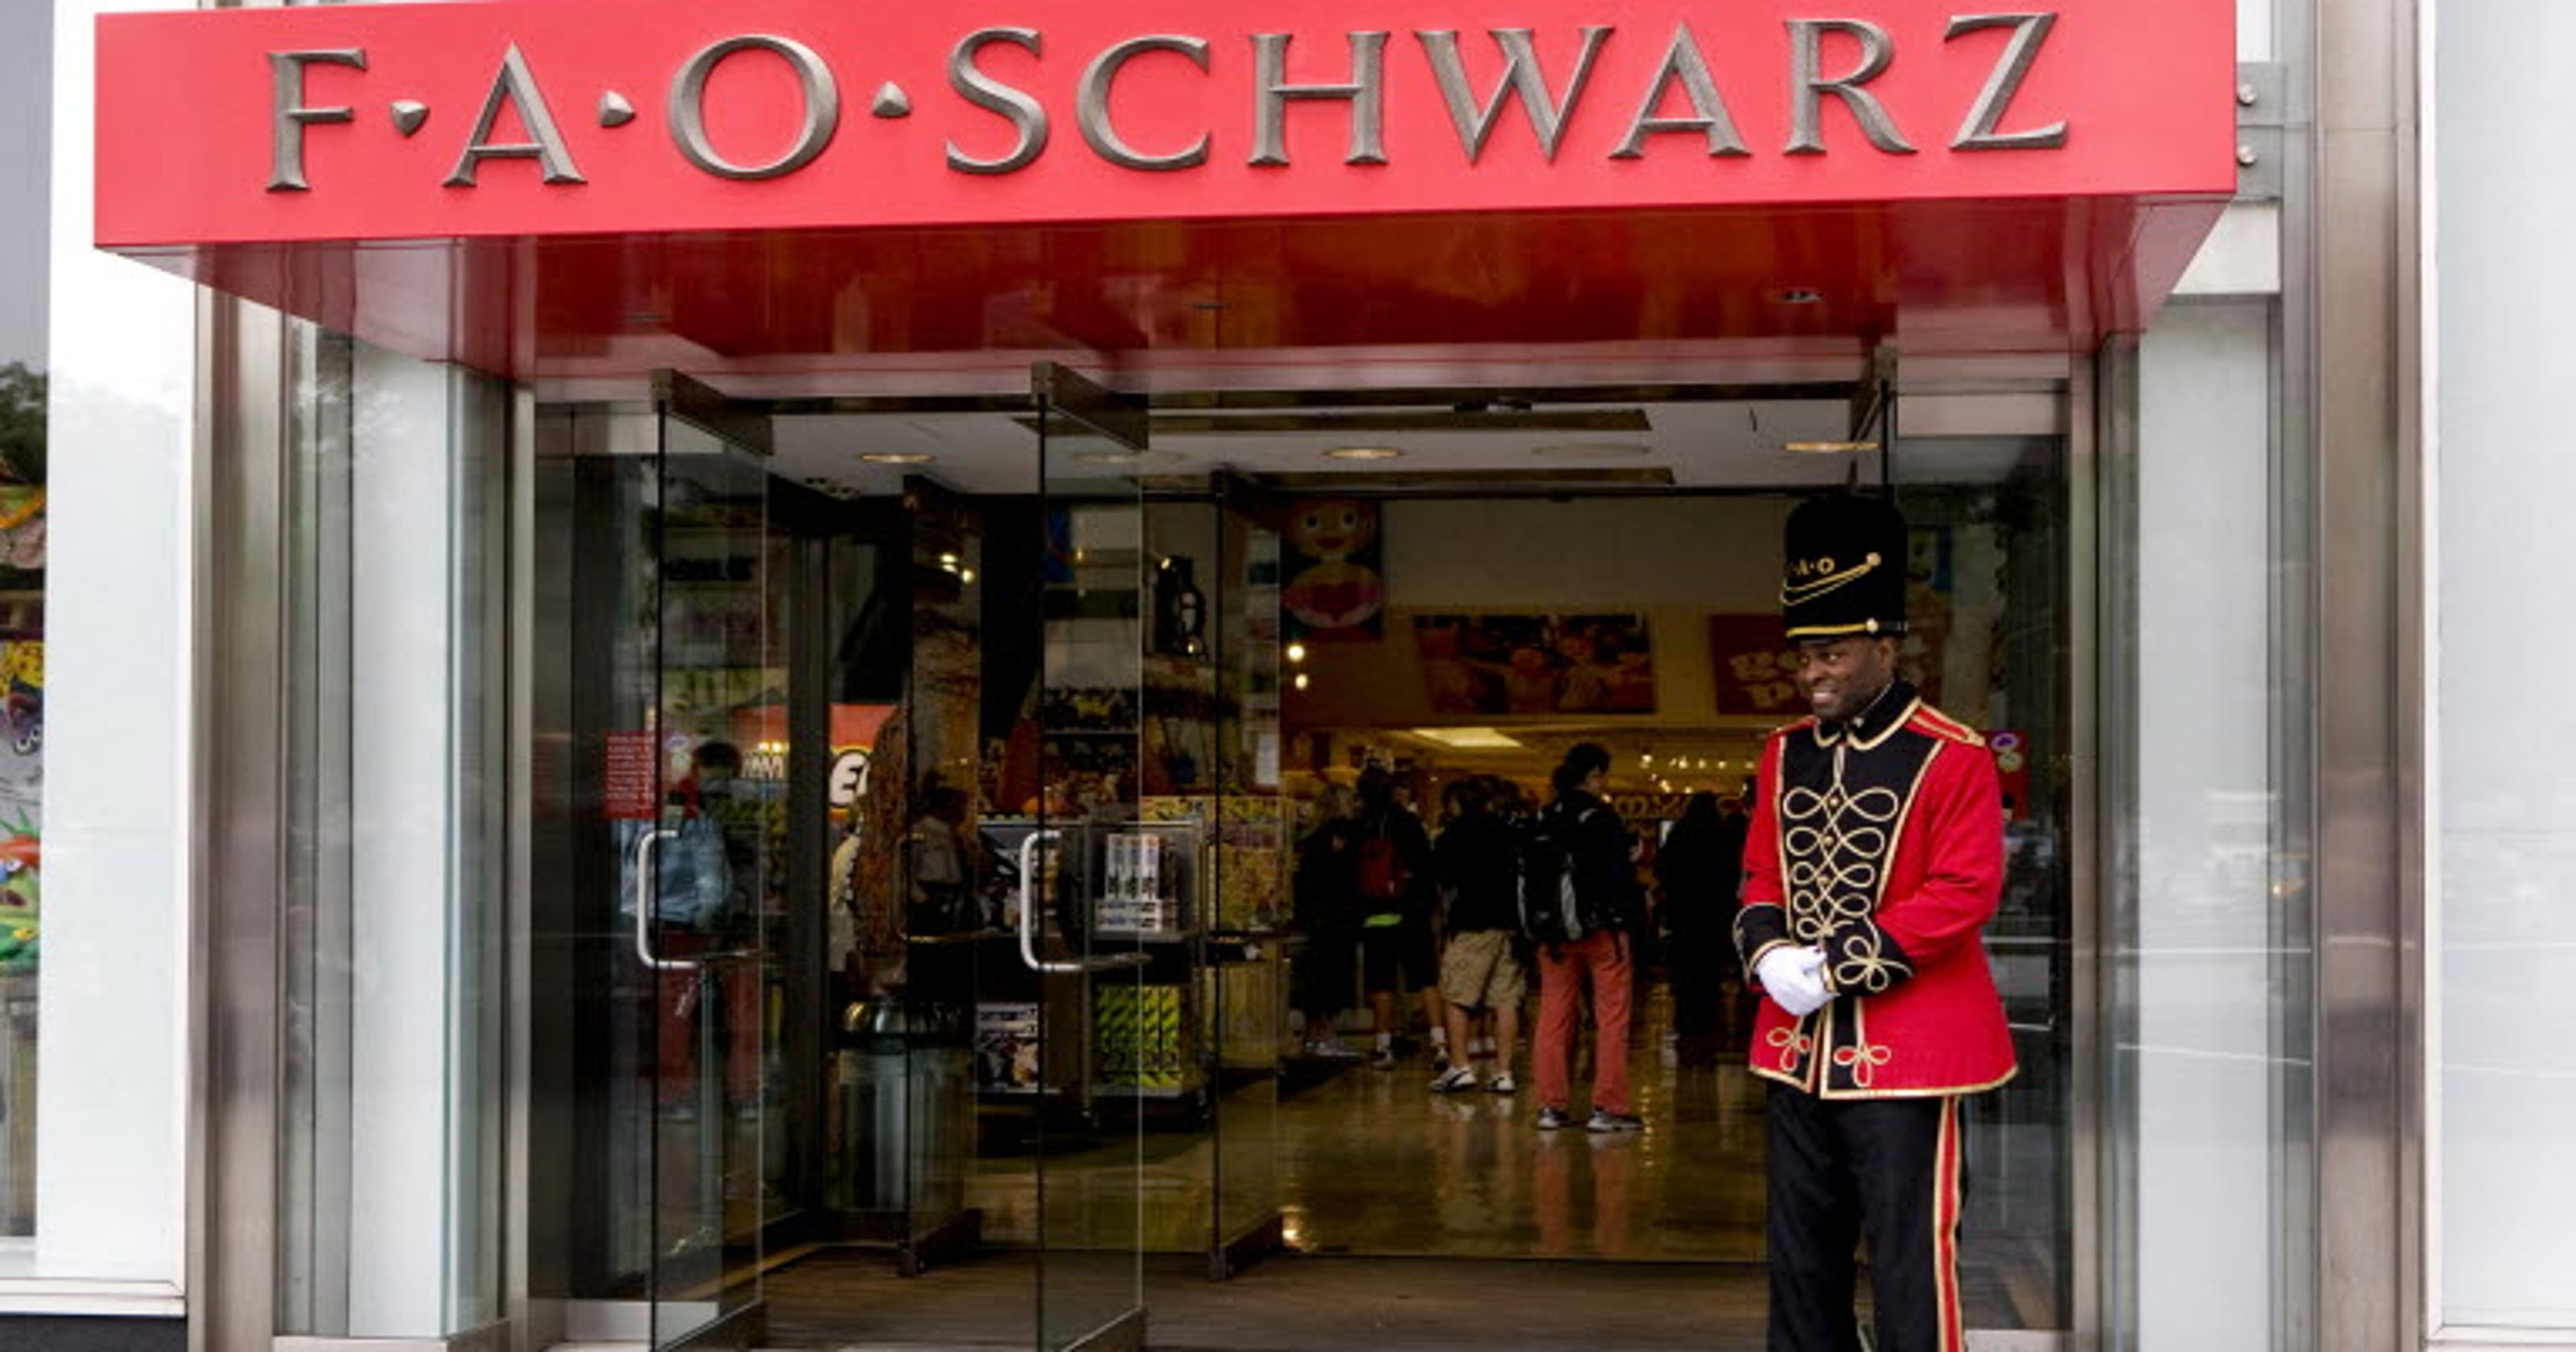 Fao Schwarz World Map.Fao Schwarz Toy Store In Nyc Closing July 15